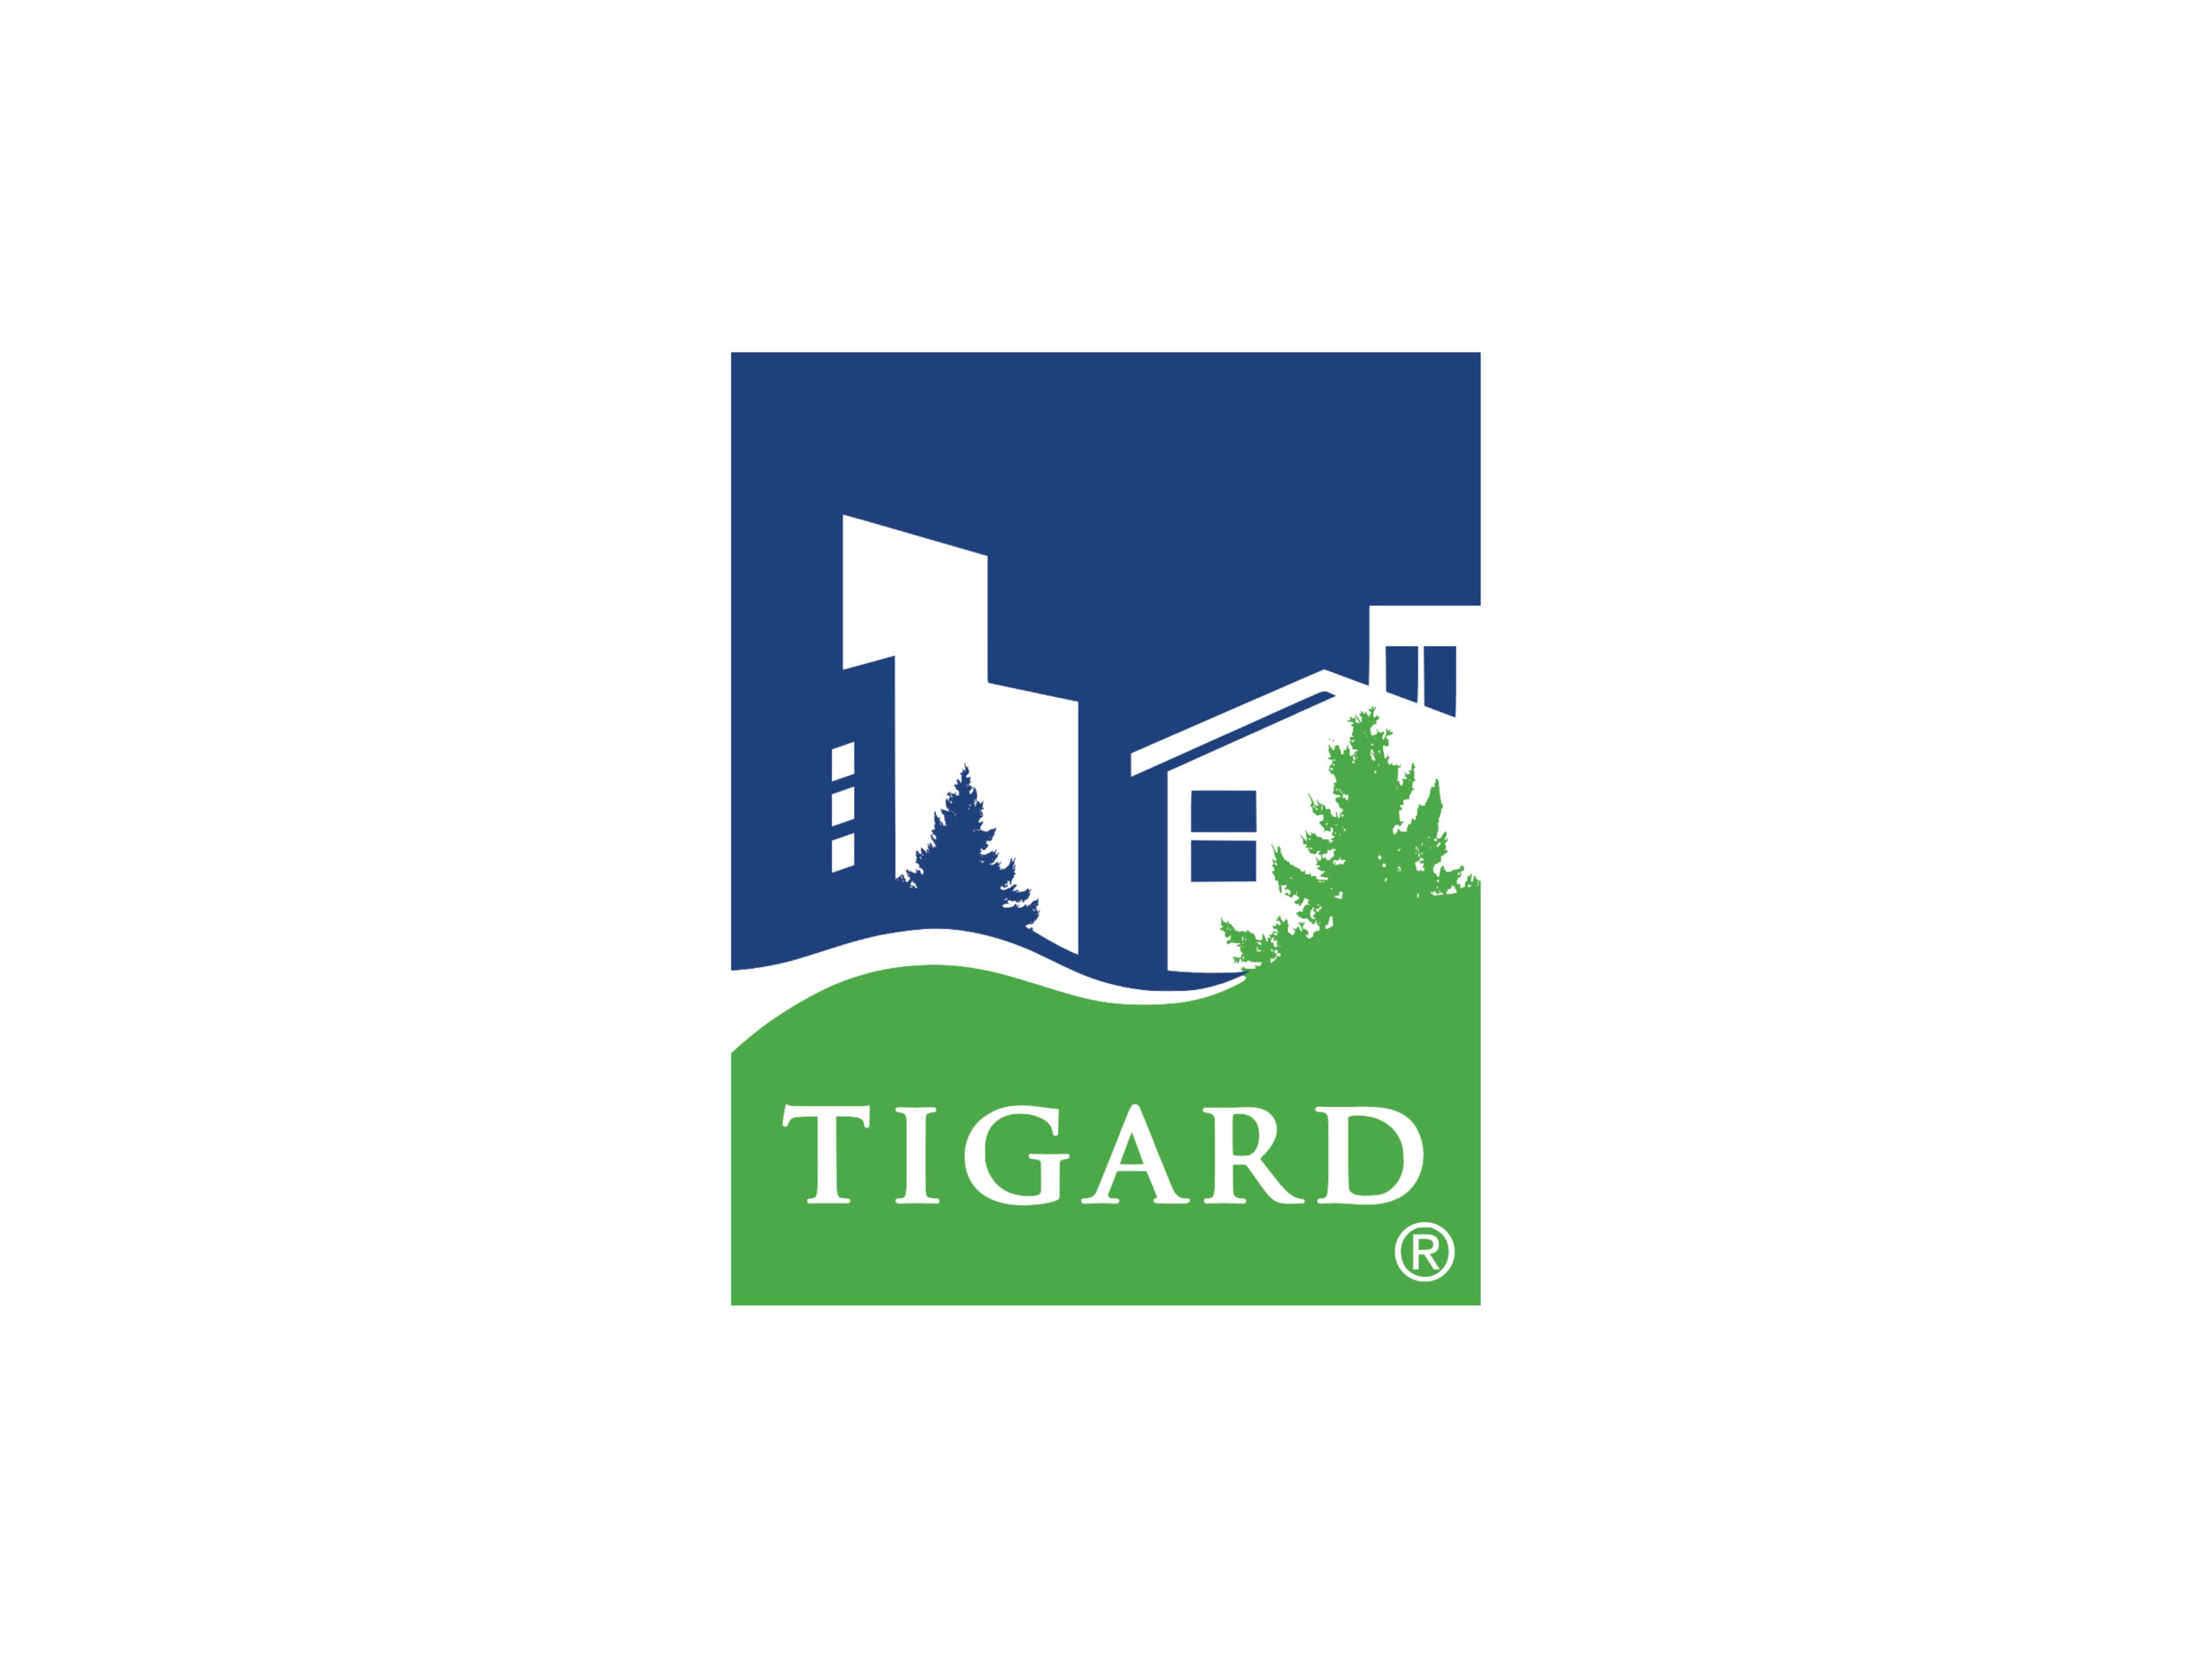 Tigard_1.png